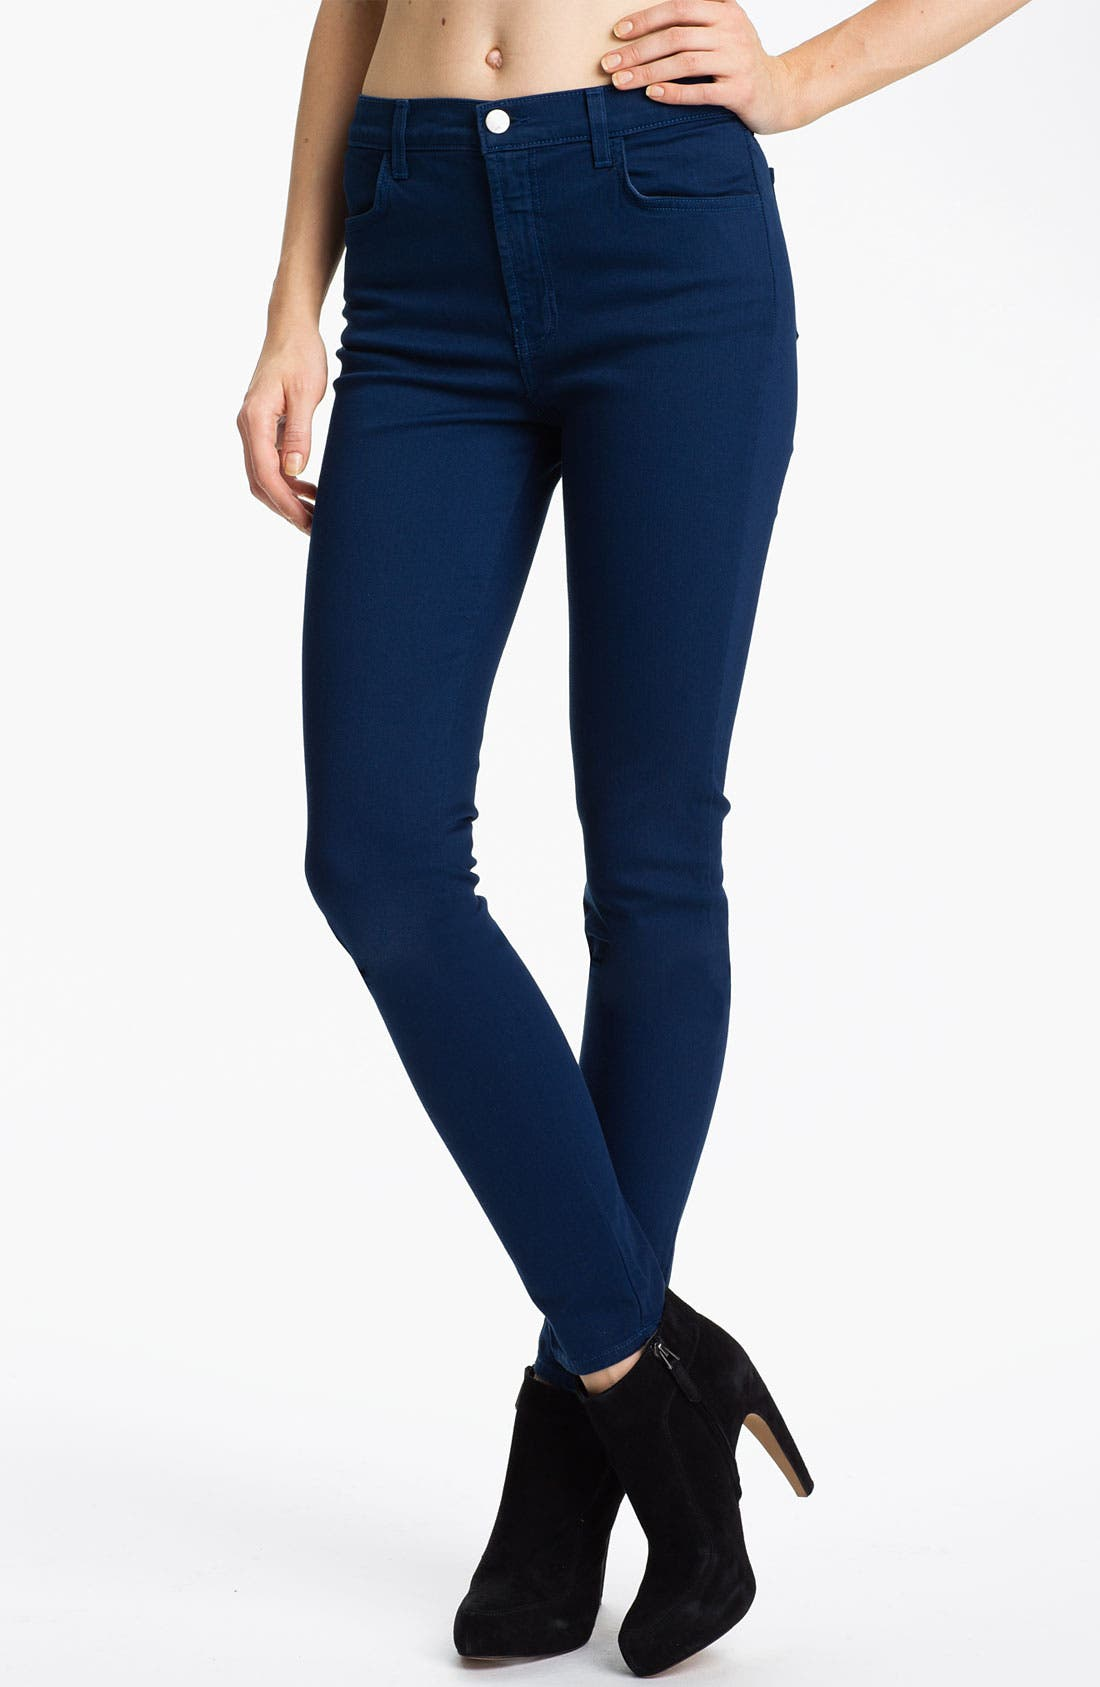 Main Image - J Brand 'Maria' High Rise Skinny Stretch Jeans (Nightfall)